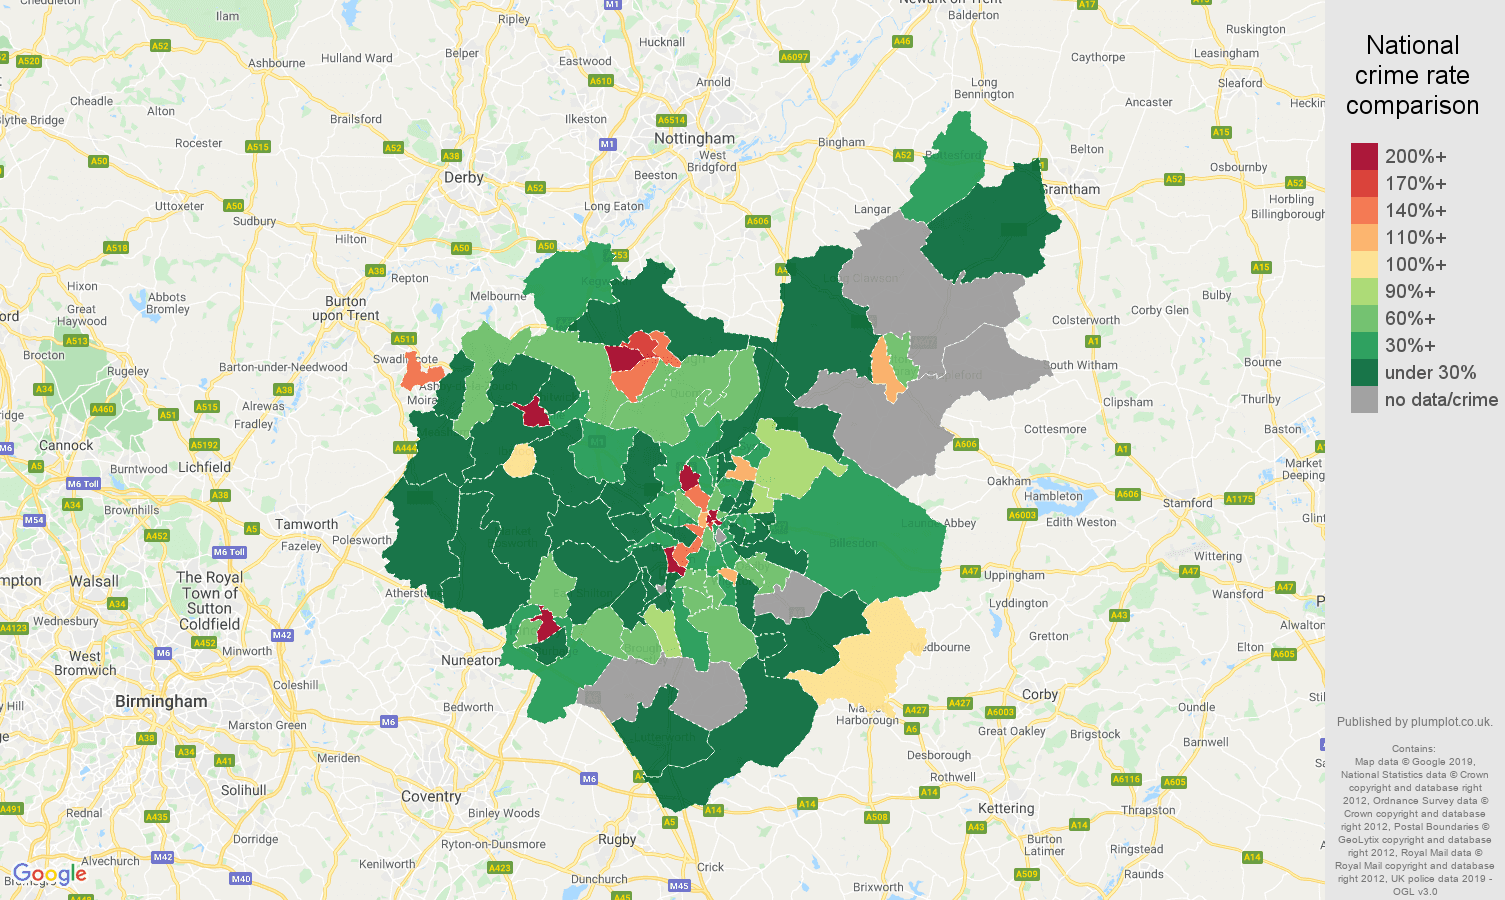 Leicestershire shoplifting crime rate comparison map